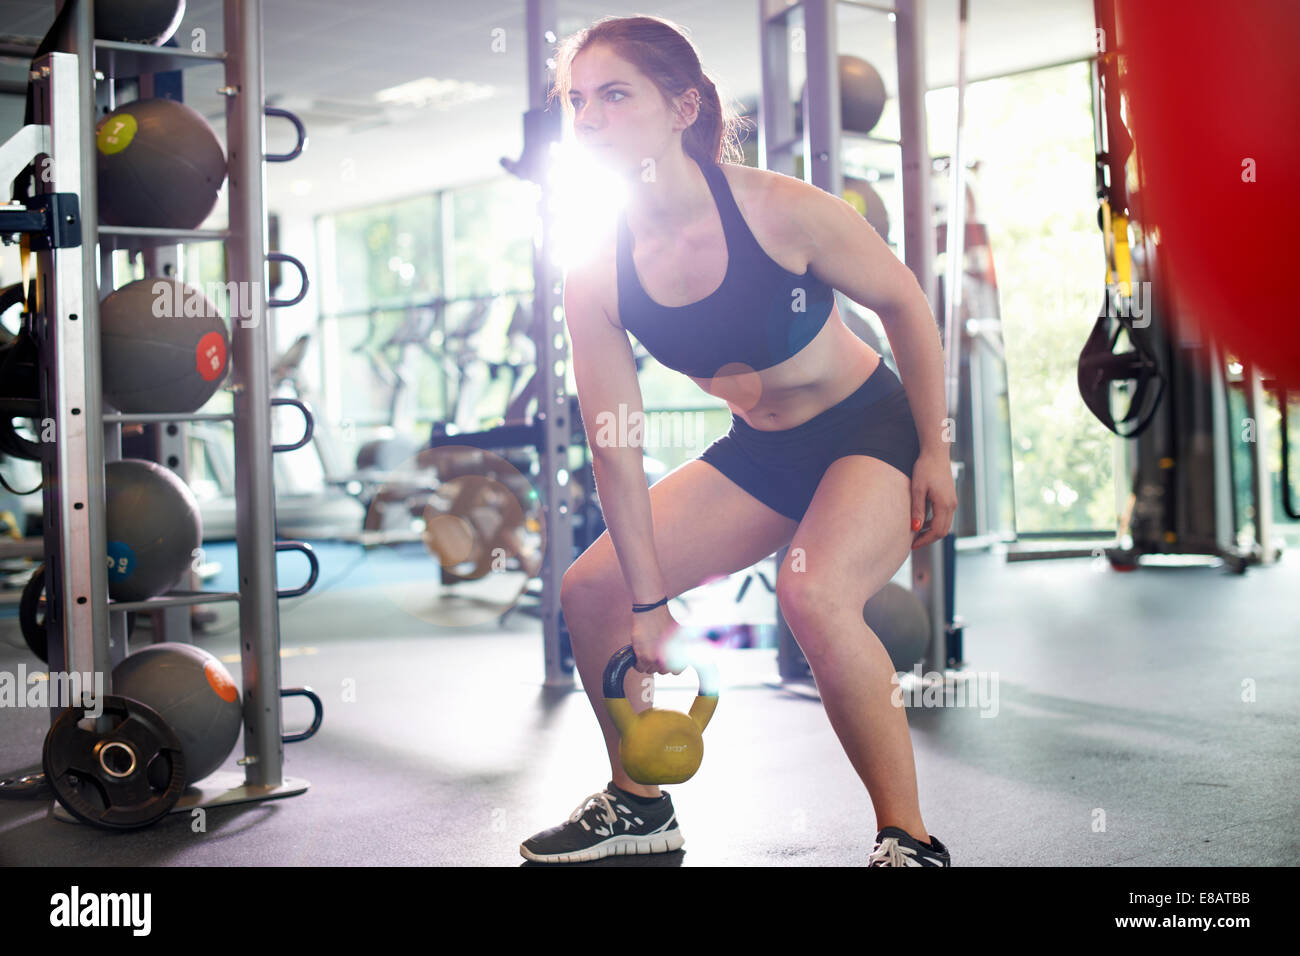 Young woman lifting kettlebell - Stock Image